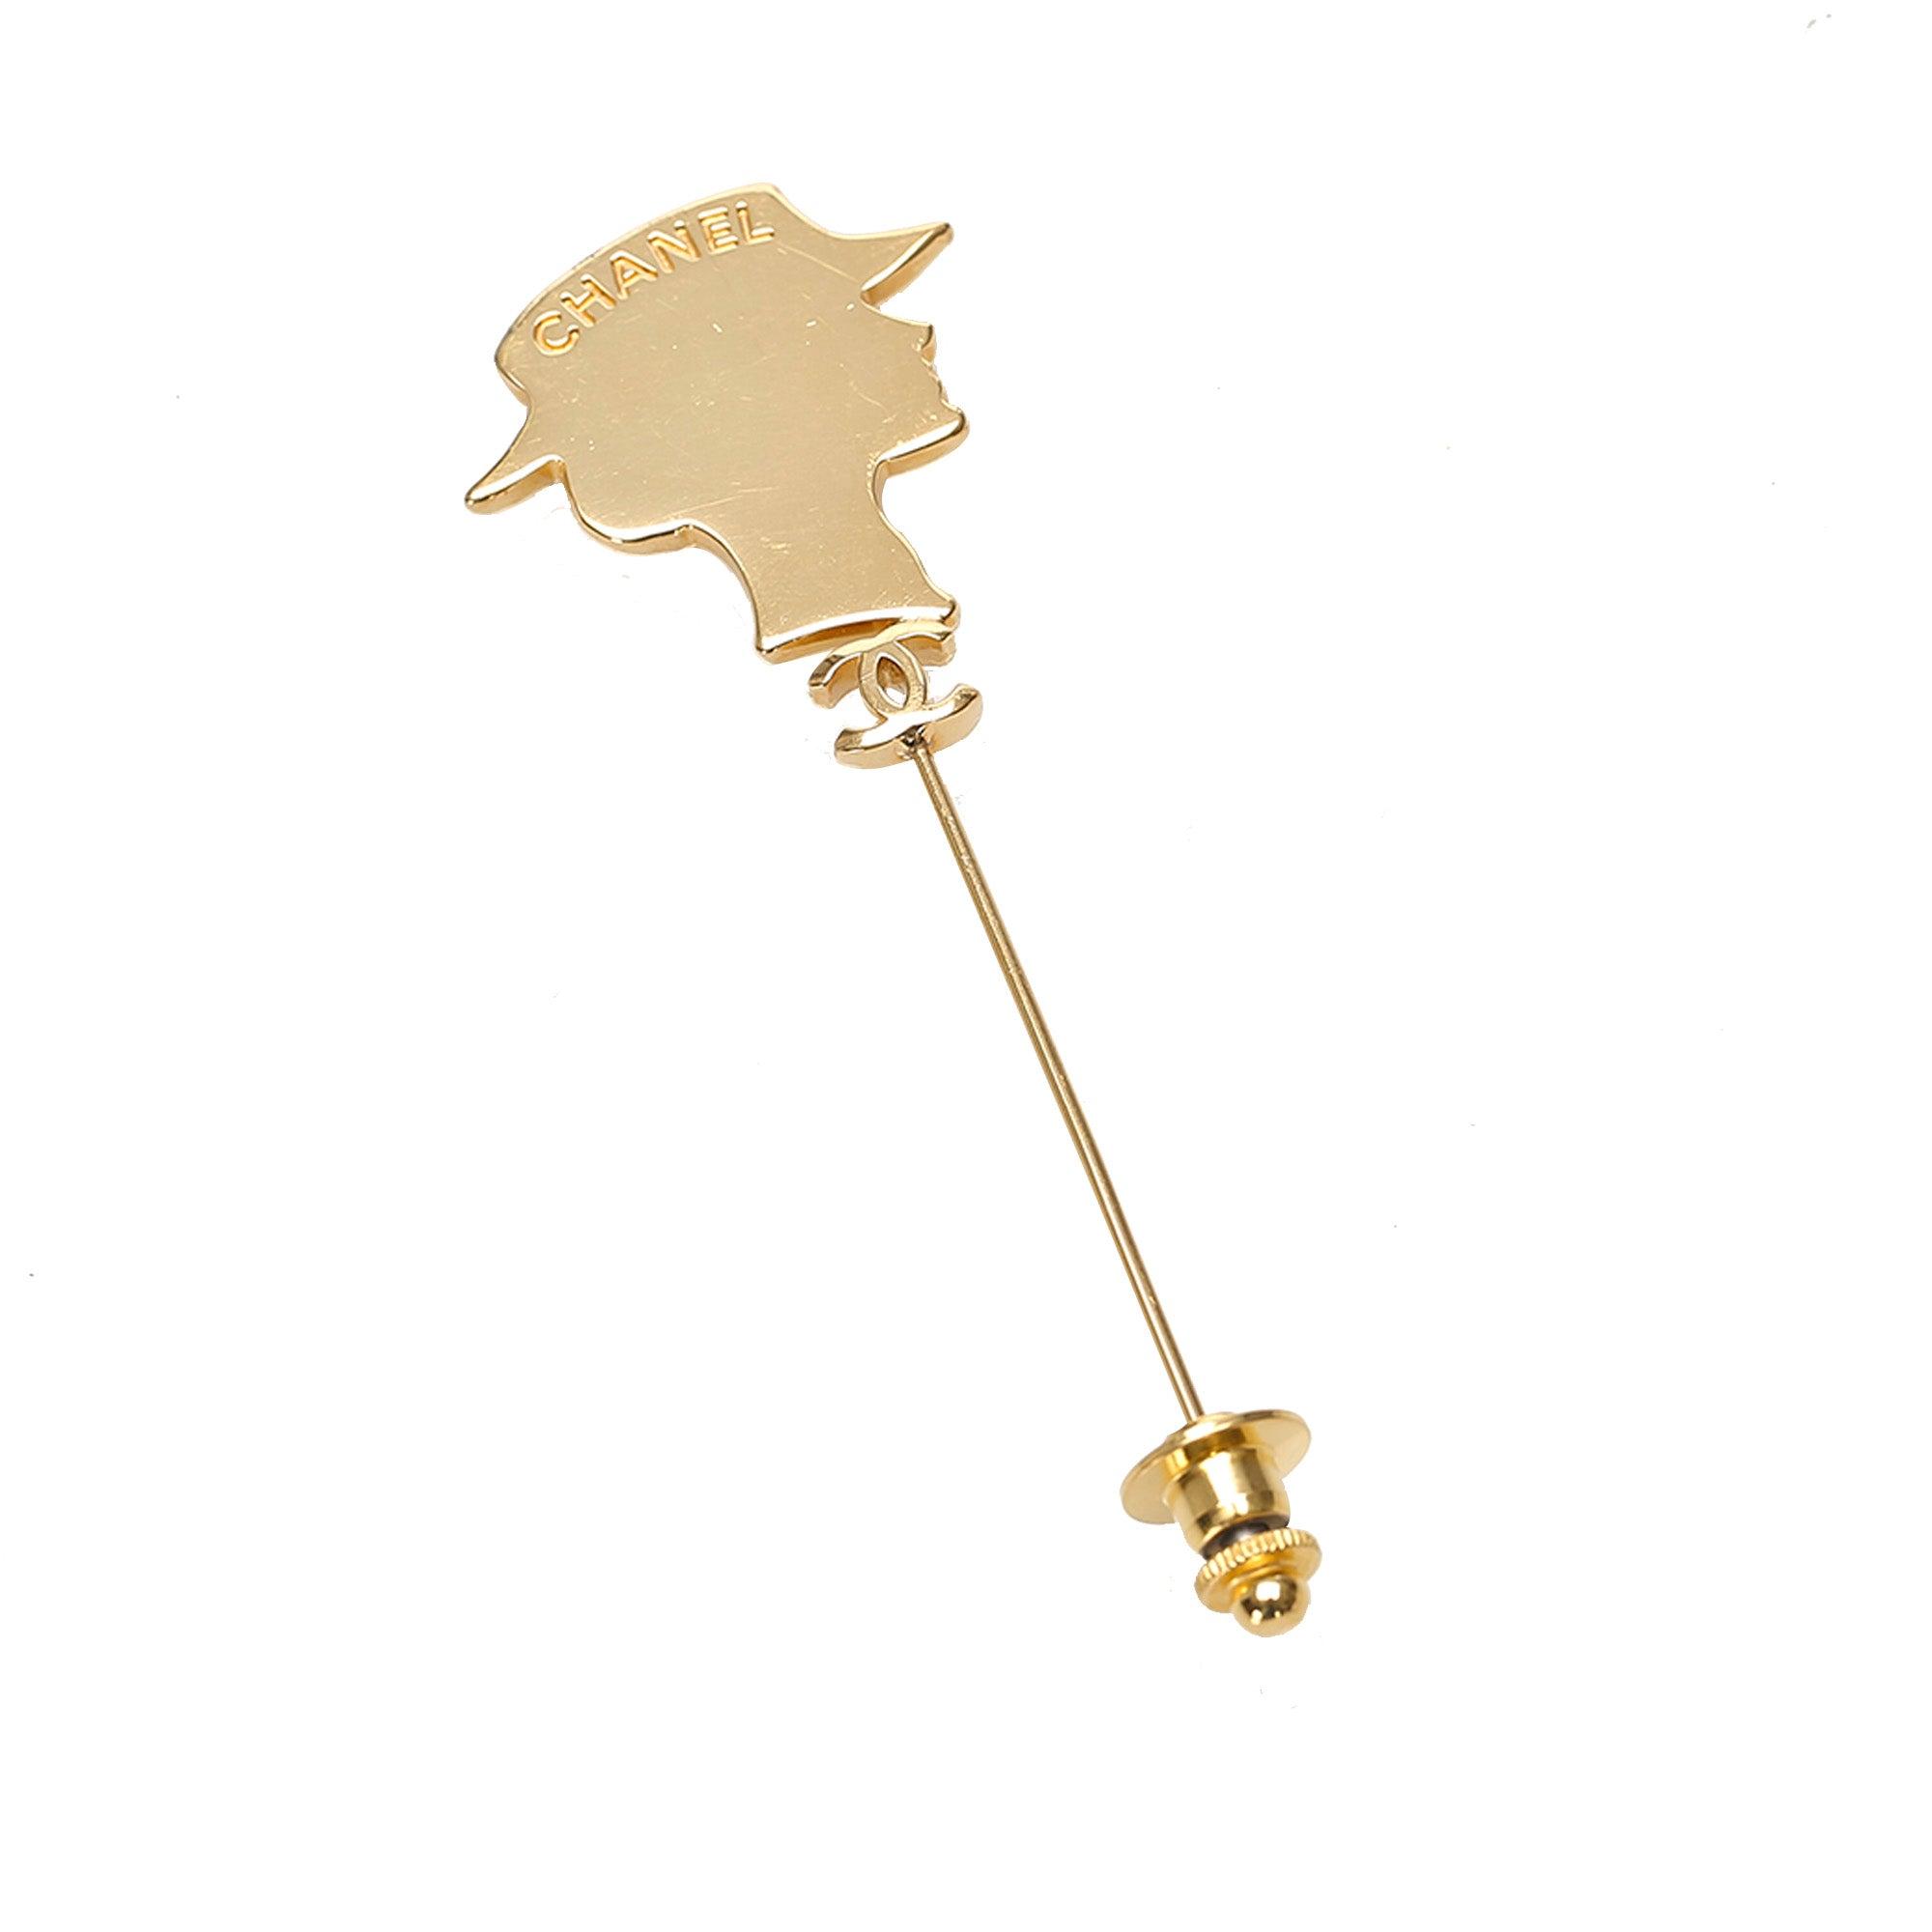 Chanel Gold Mademoiselle Brooch